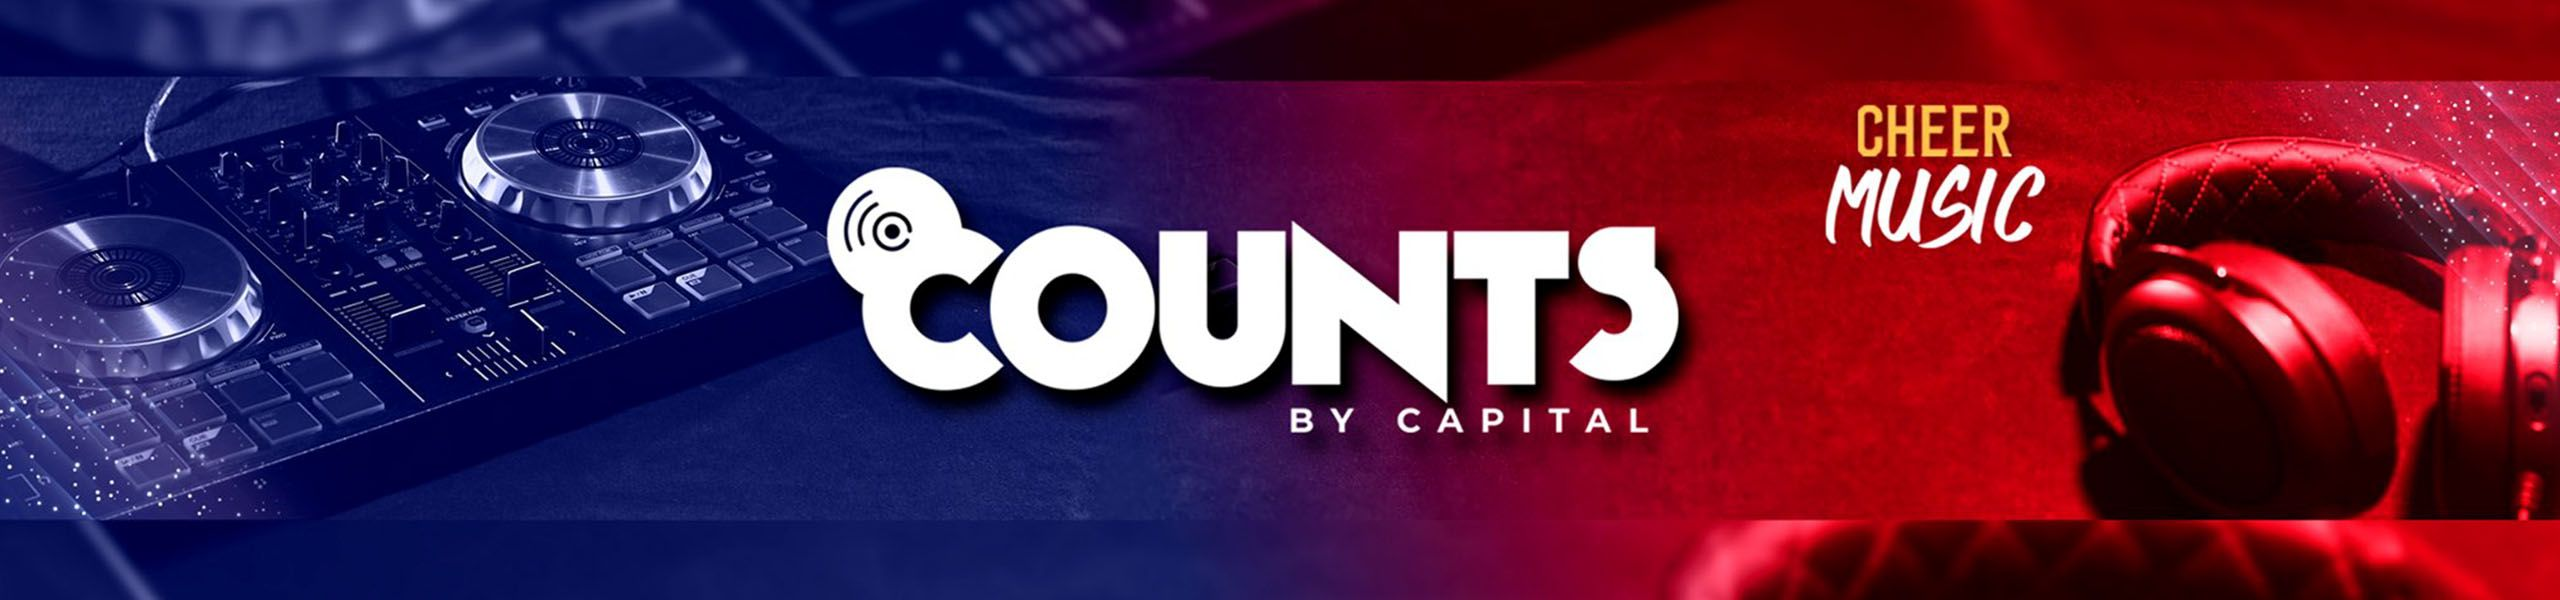 8counts by capital cheer